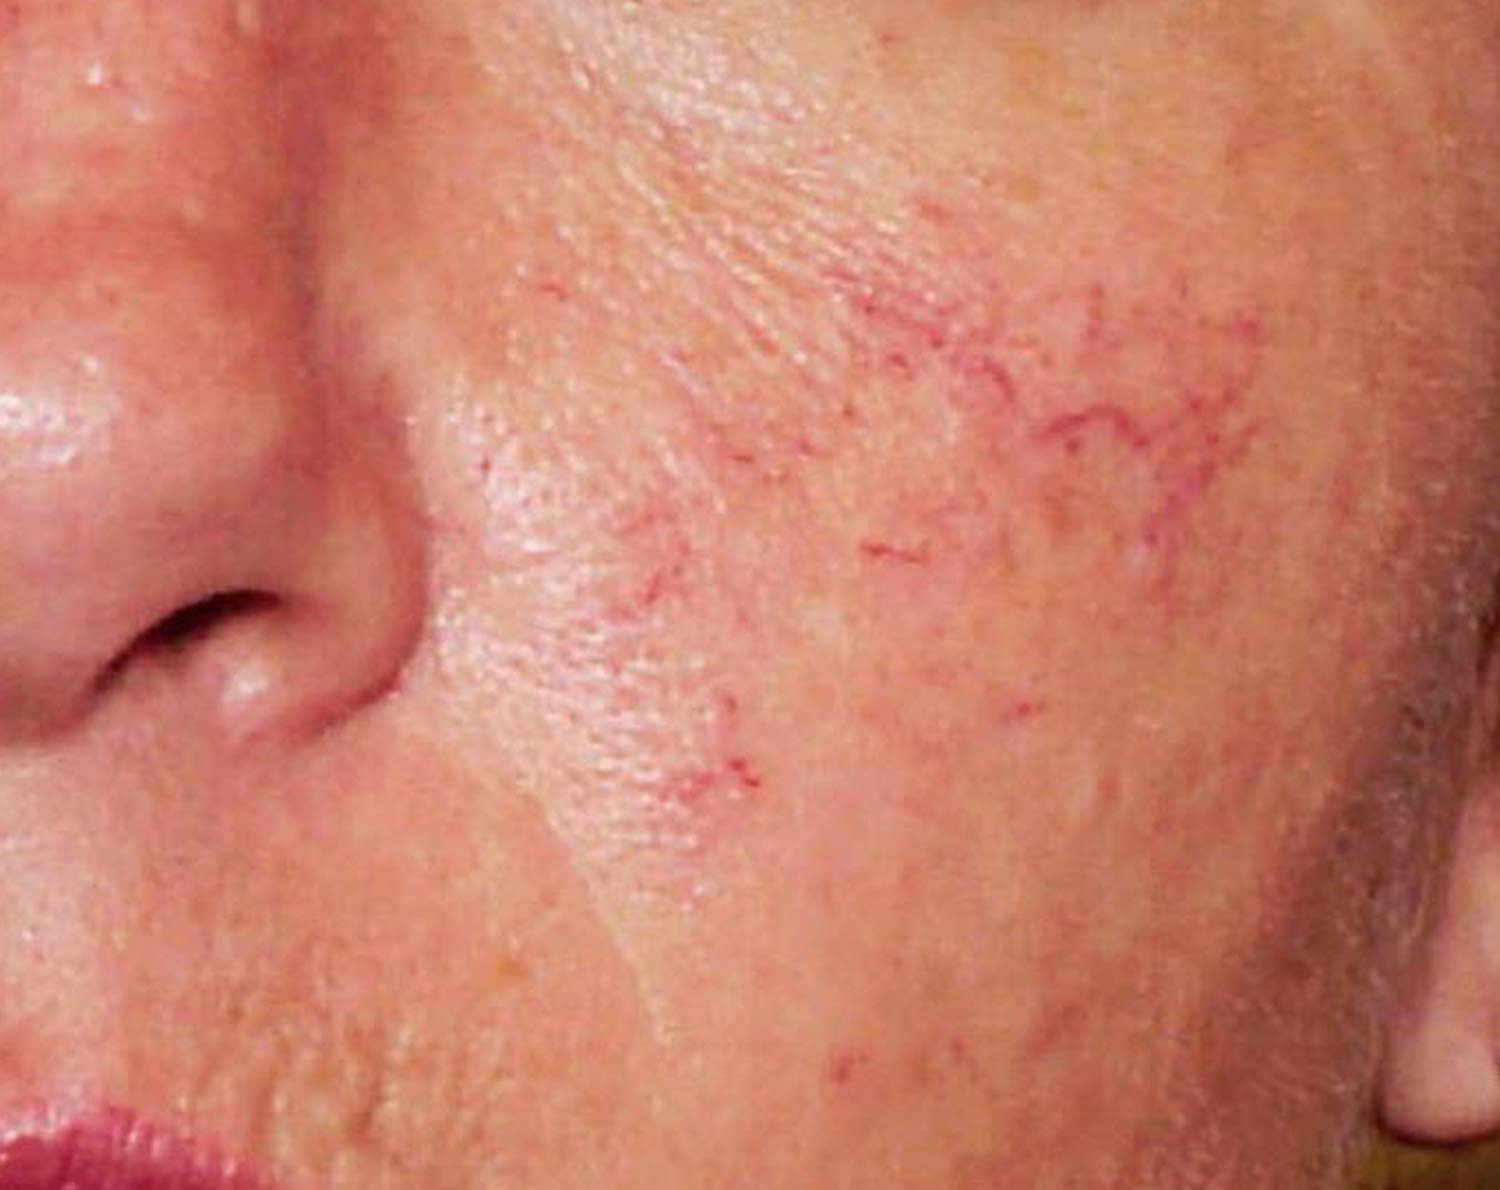 Spider veins on a patients face before laser treatment.